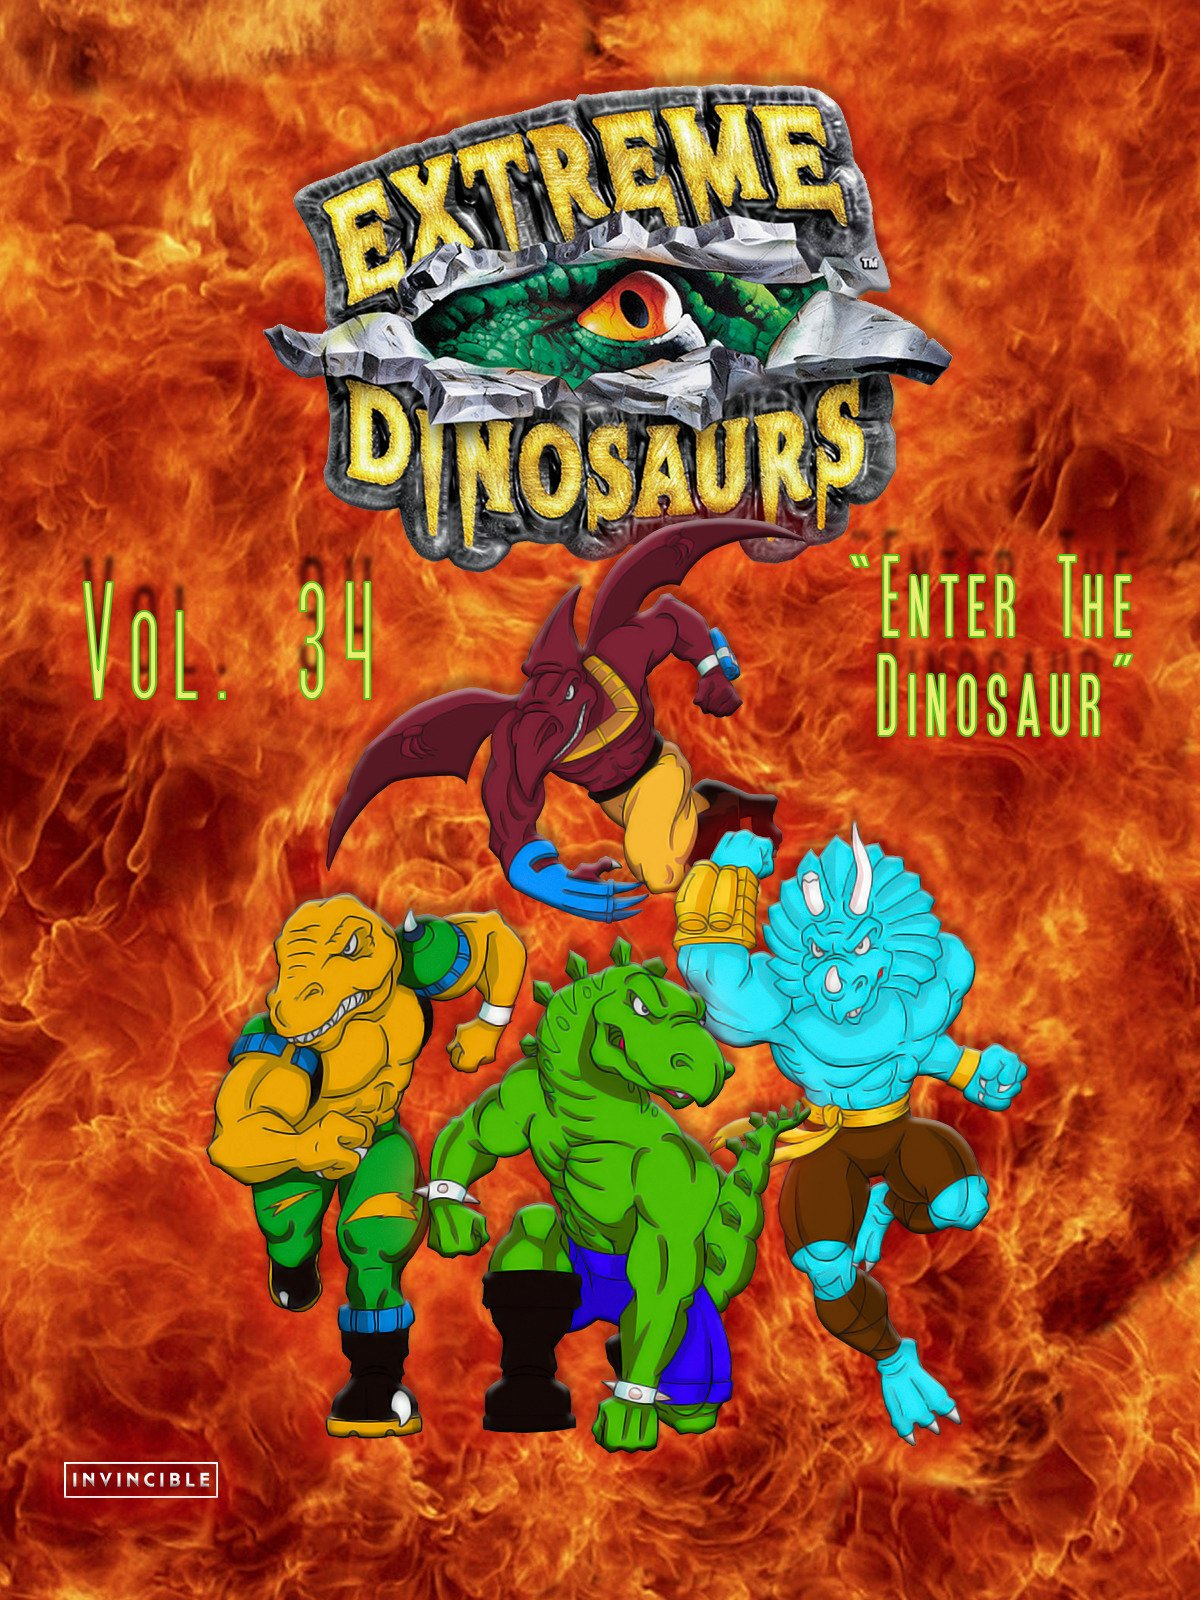 Extreme Dinosaurs Vol. 34Enter the Dinosaur